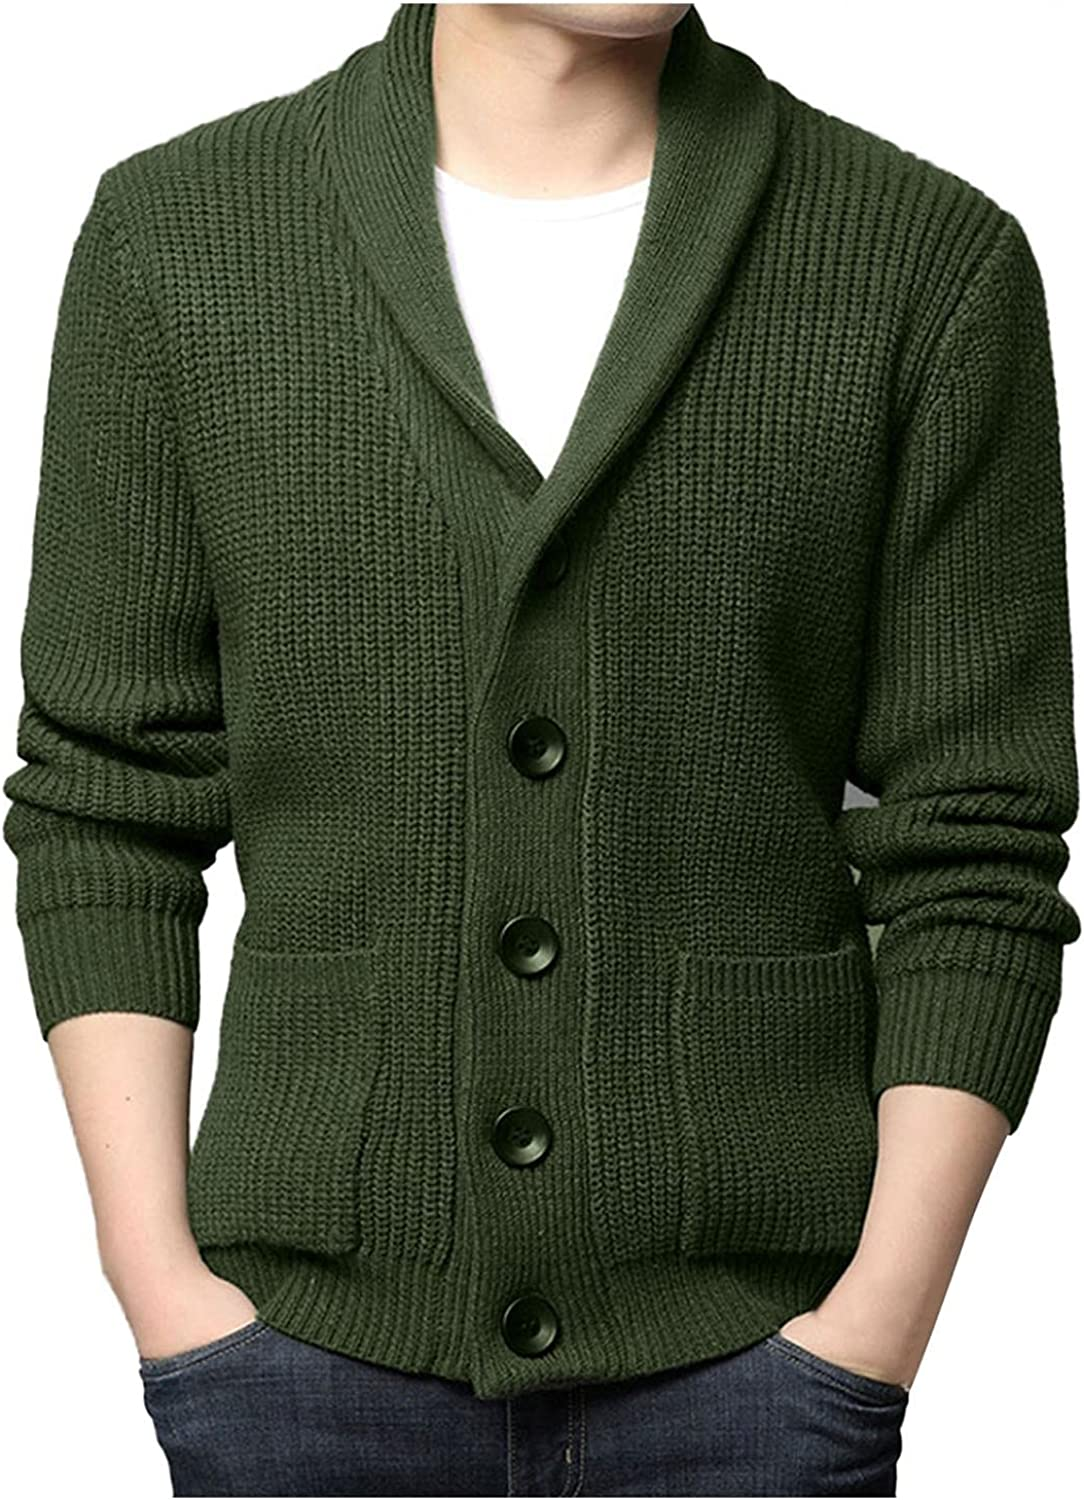 Men Knitted Cardigan Sweater Long Sleeve Shawl Collar Button Down Sweatershirt Casual Loose Thermal Wool Top Blouse